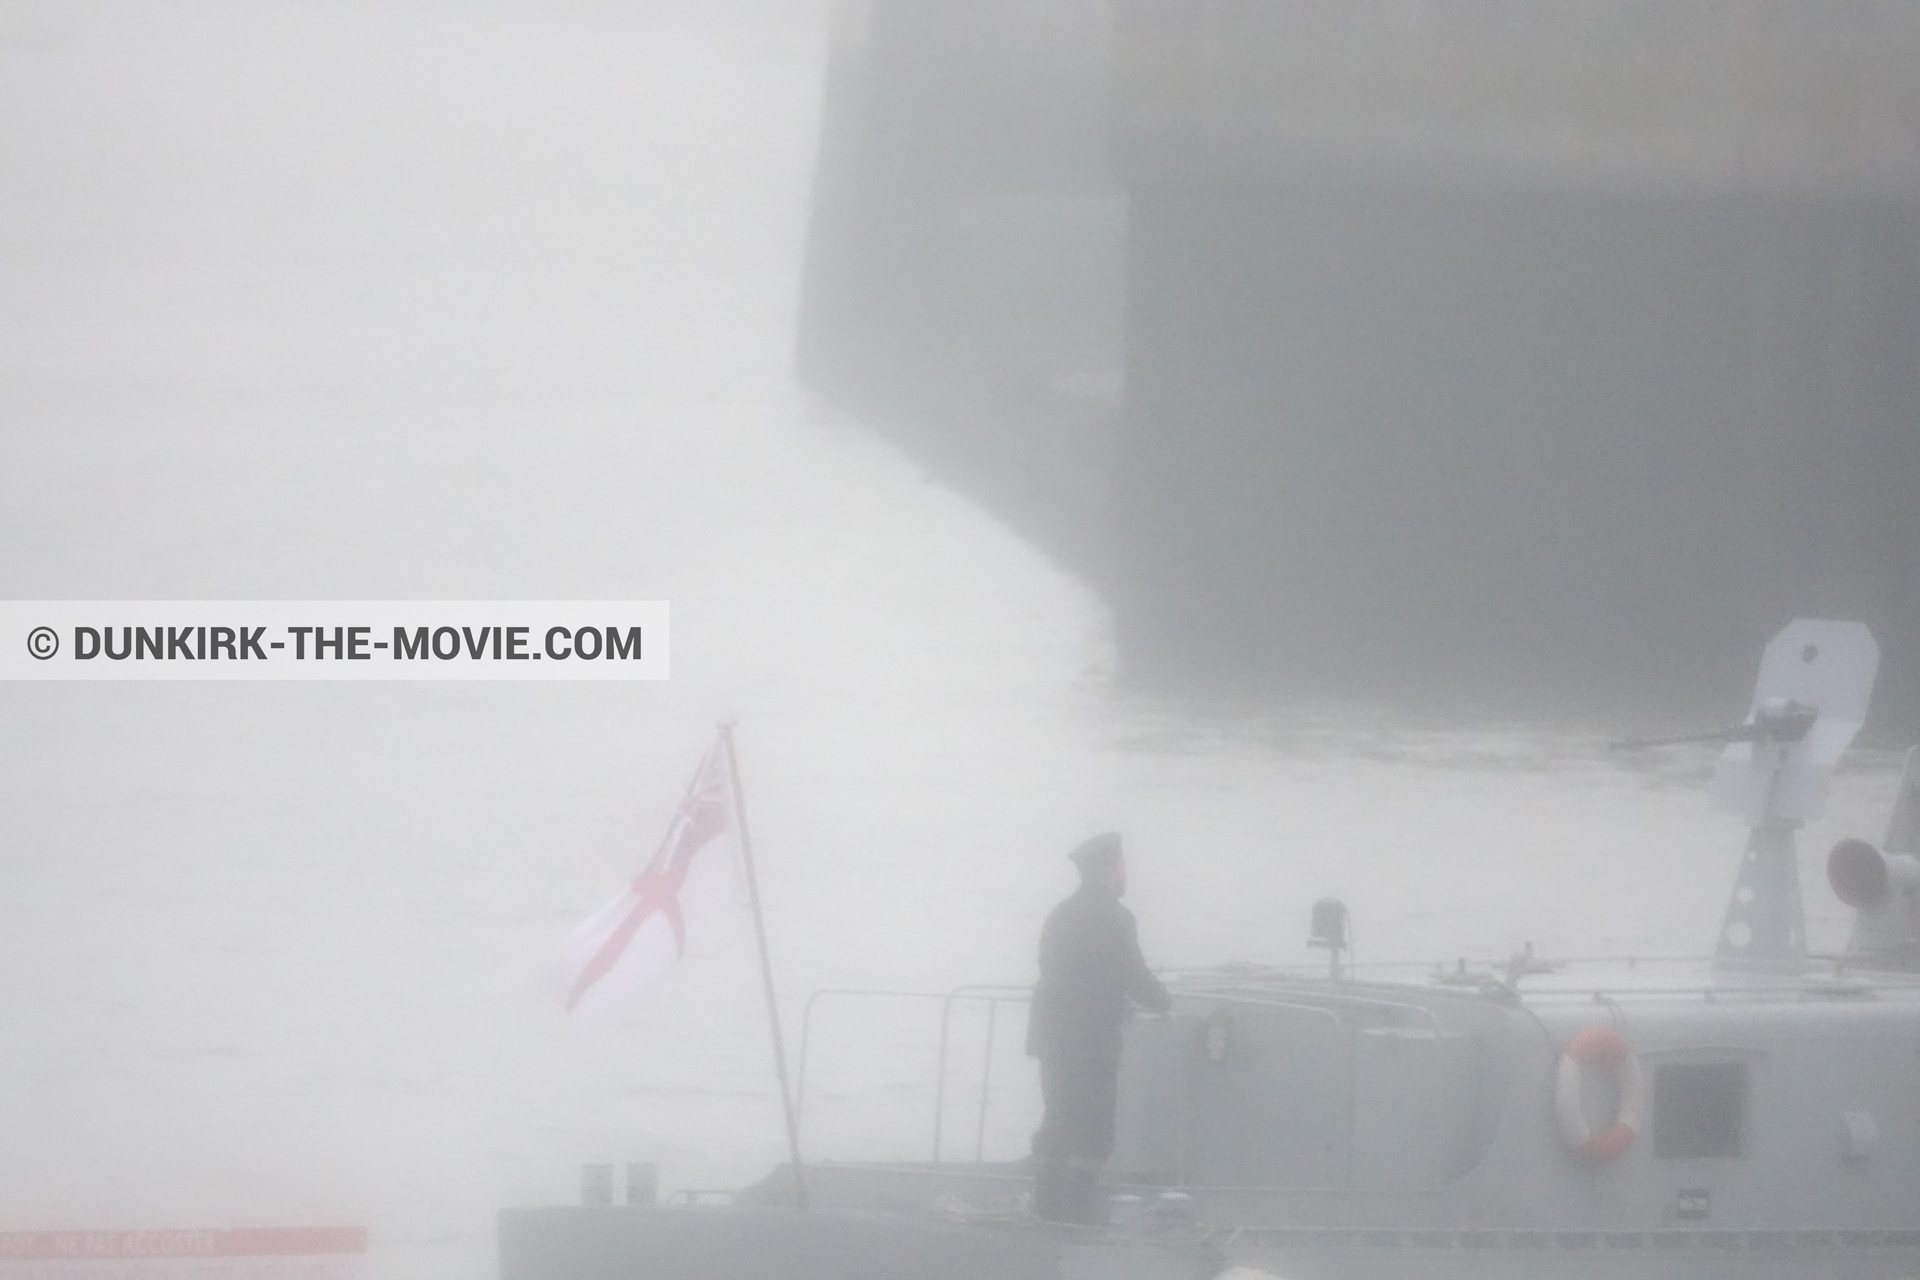 Picture with boat, grey sky, PR 22,  from behind the scene of the Dunkirk movie by Nolan